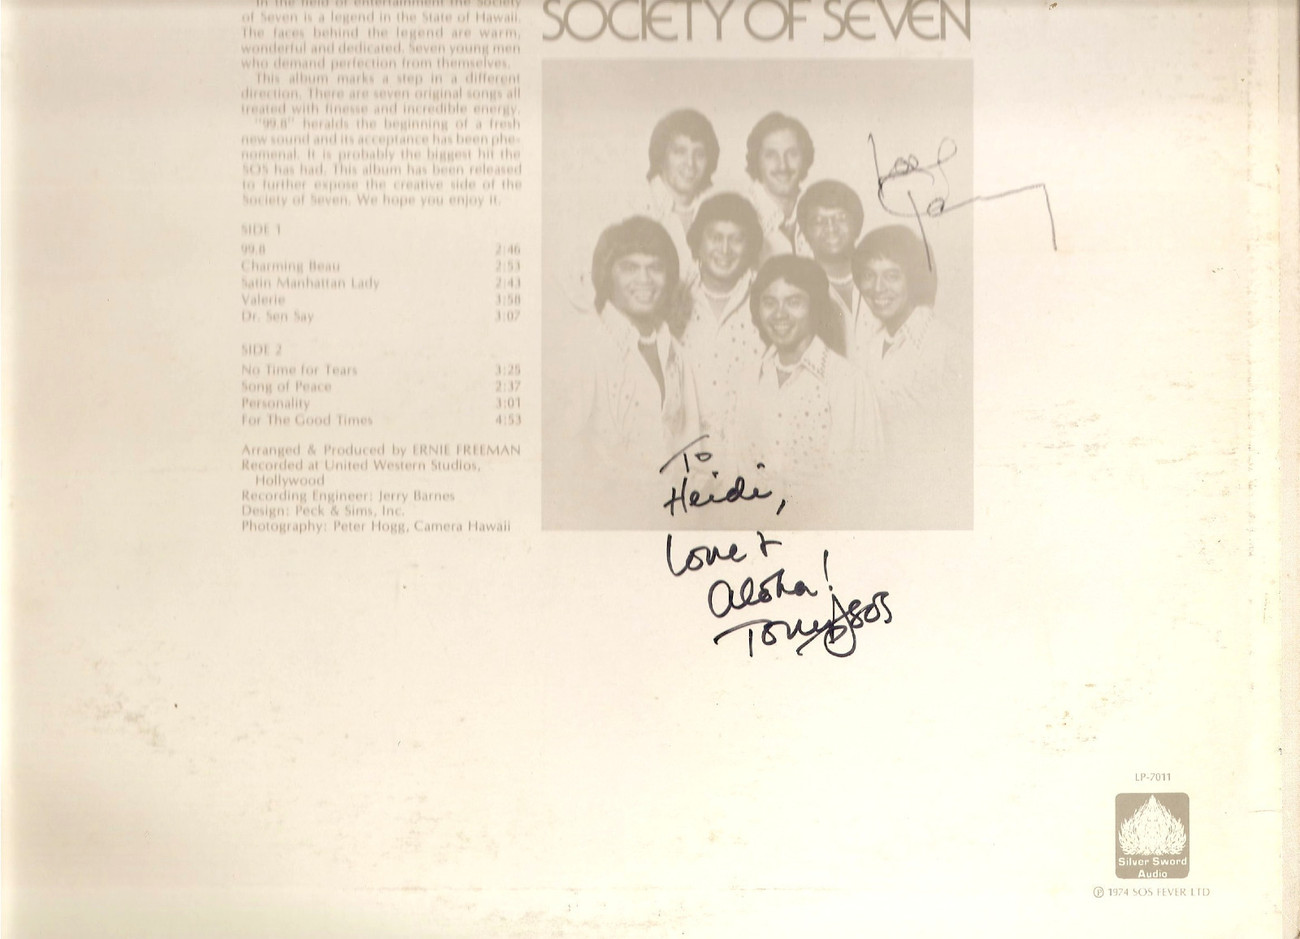 Society of Seven 99.8 LP signed autographed Hawaiian modern soul funk boogie